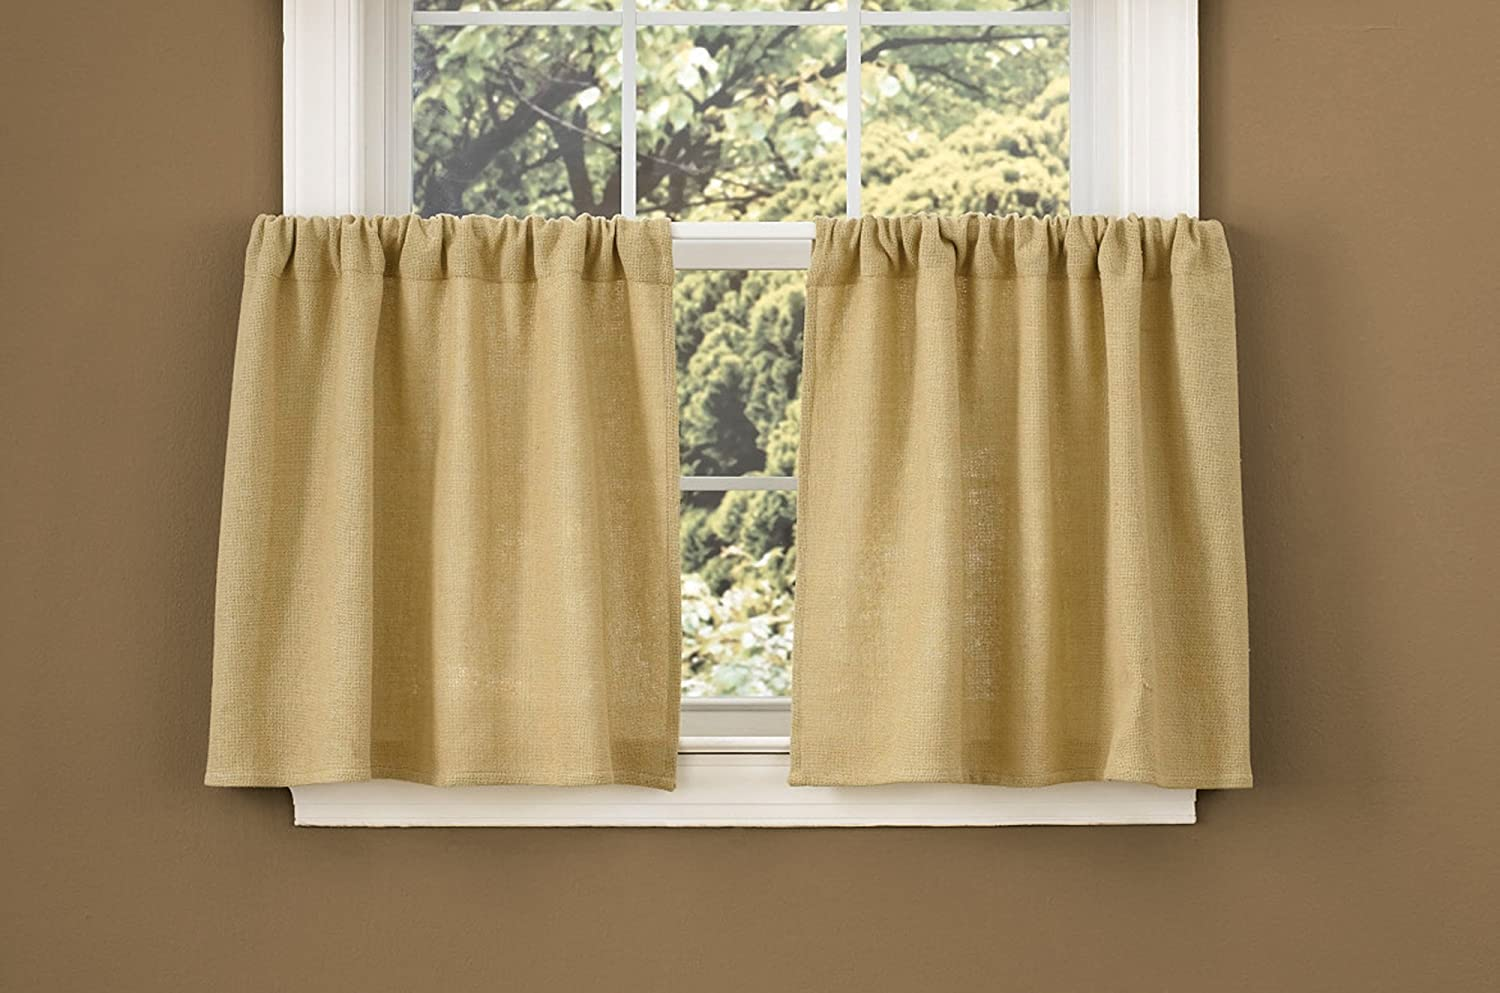 Burlap window treatments - Amazon Com Park Designs Burlap Window Treatment Tier 72 X 24 Home Kitchen